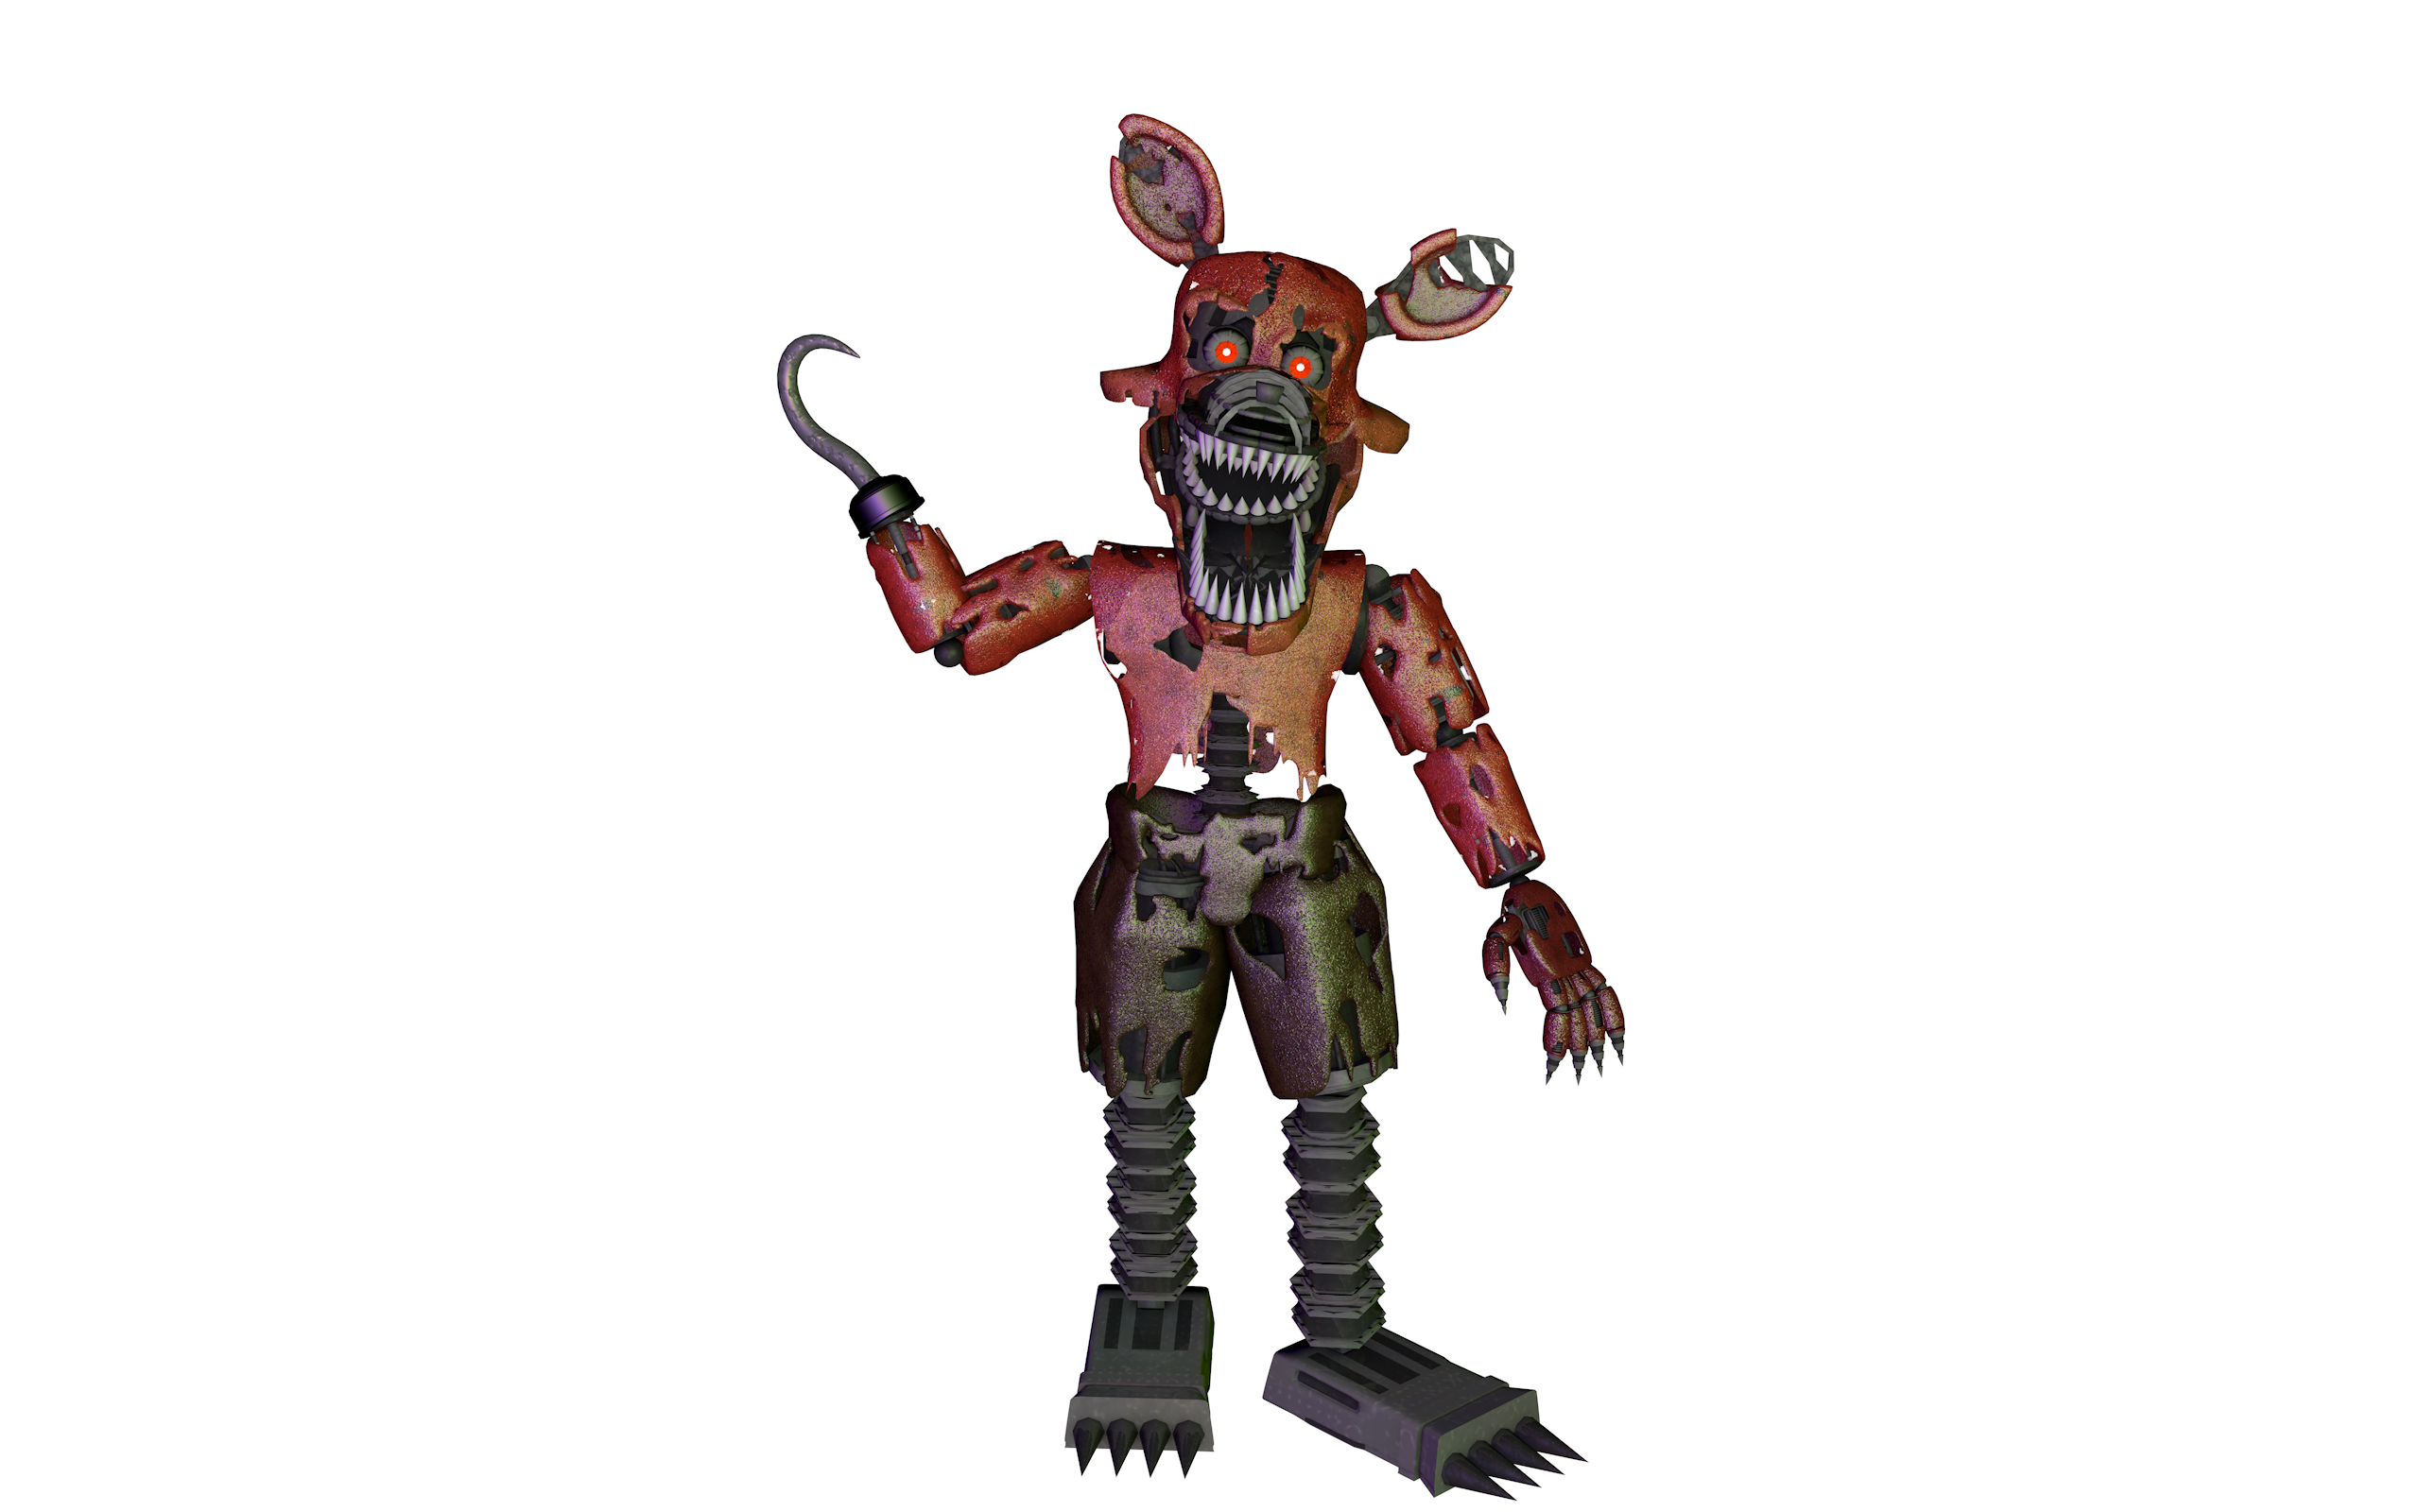 PuppetProductions 22 28 Nightmare Foxy 4.0 Update | ThrPuppet by  PuppetProductions - Nightmare Foxy PNG